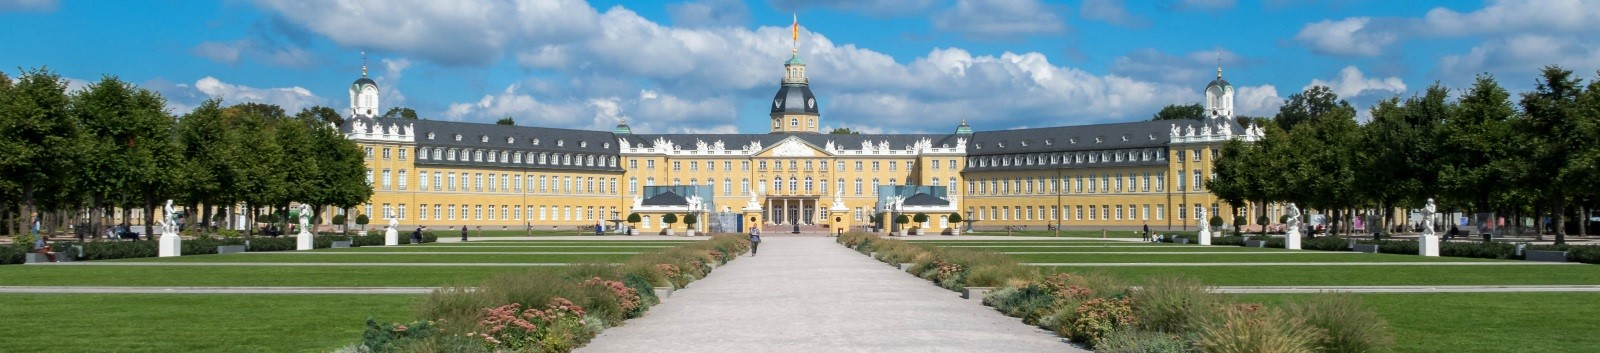 Tagungshotels in Karlsruhe, Conference and meeting hotels in Karlsruhe